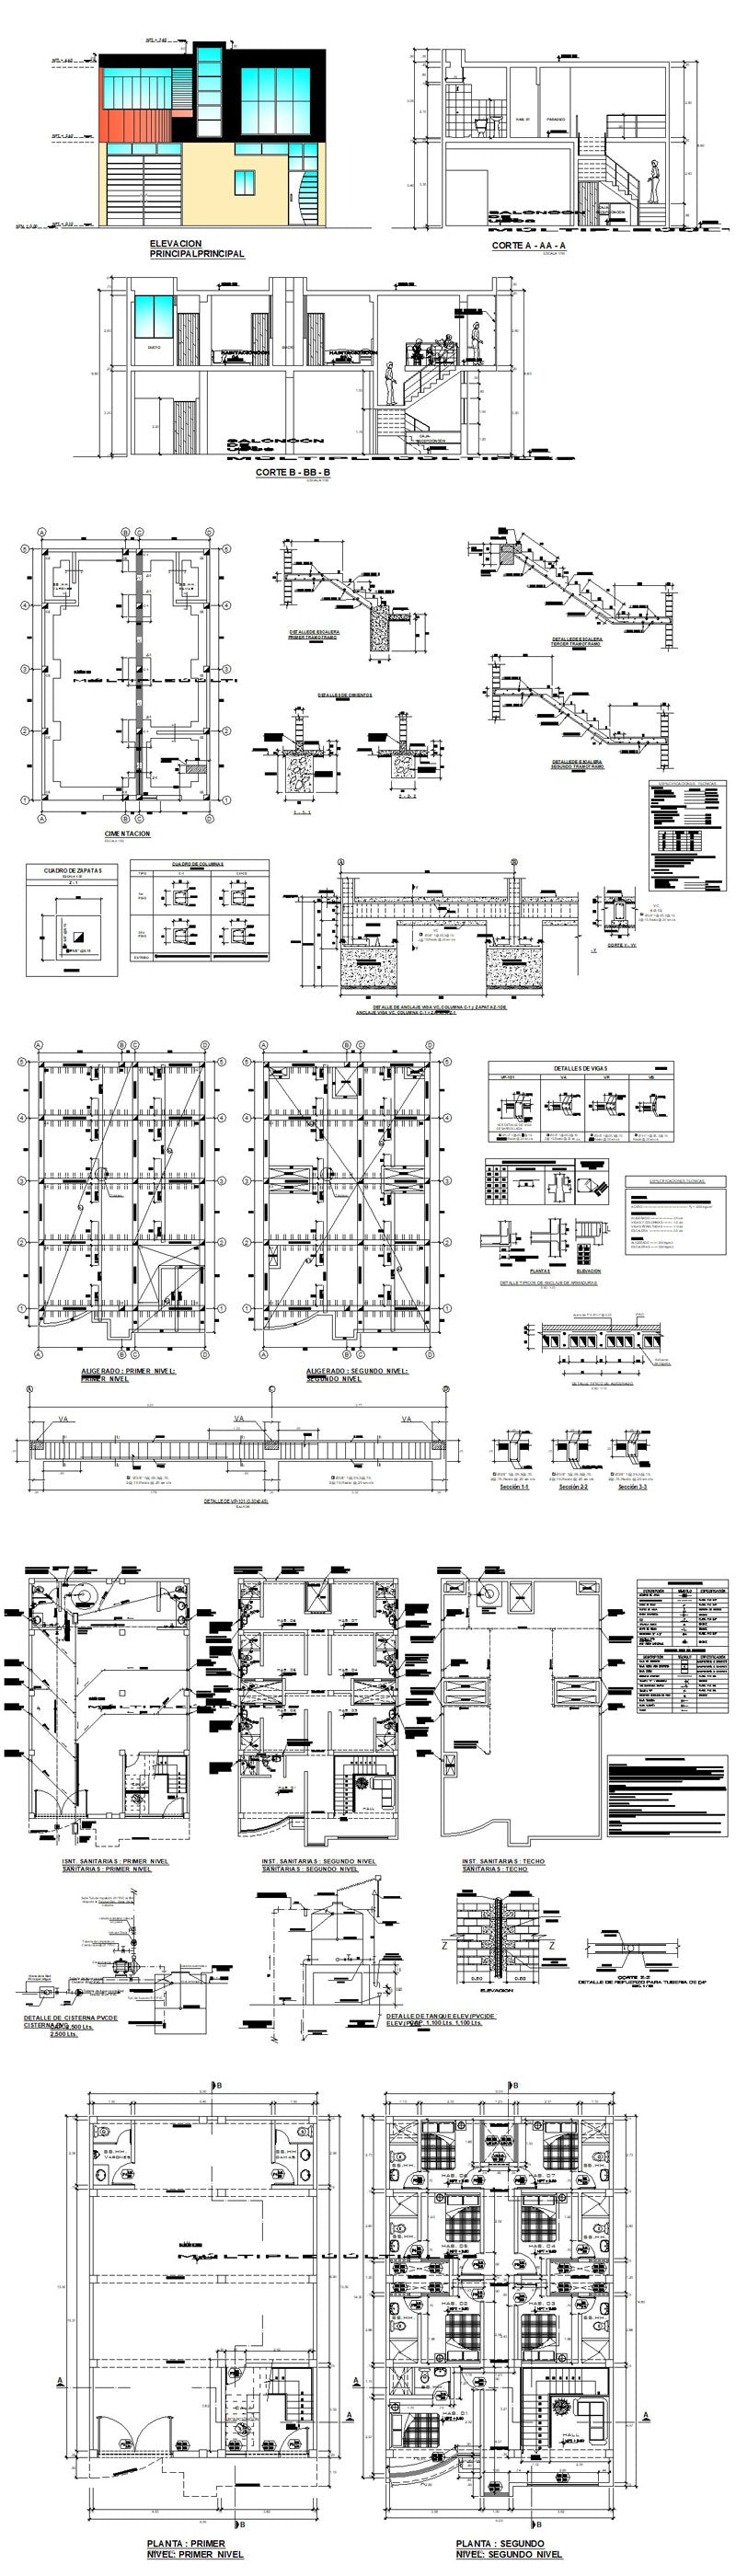 ★【School, University, College,Campus CAD Design Project V.4】@Autocad Blocks,Drawings,CAD Details,Elevation